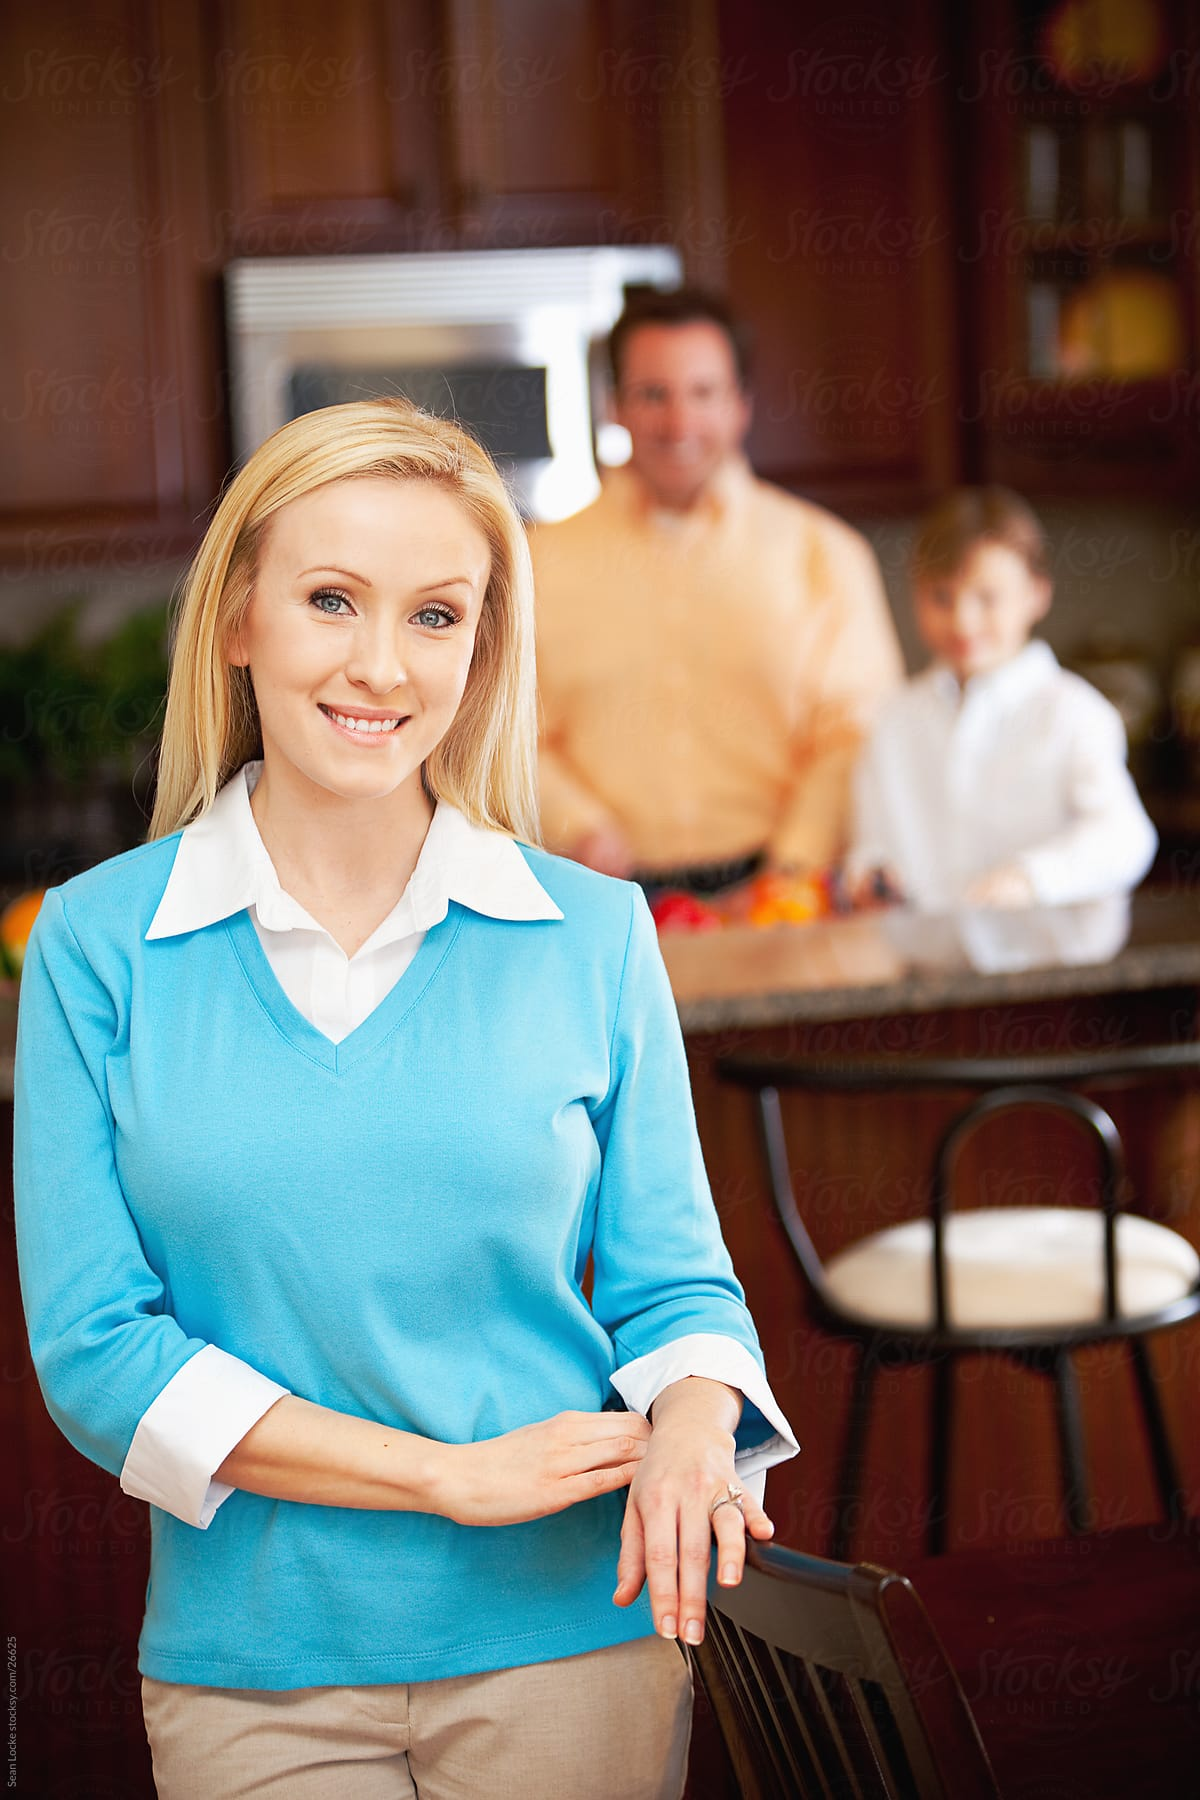 Family: Cute Mother Leans On Chair With Family In Kitchen | Stocksy ...